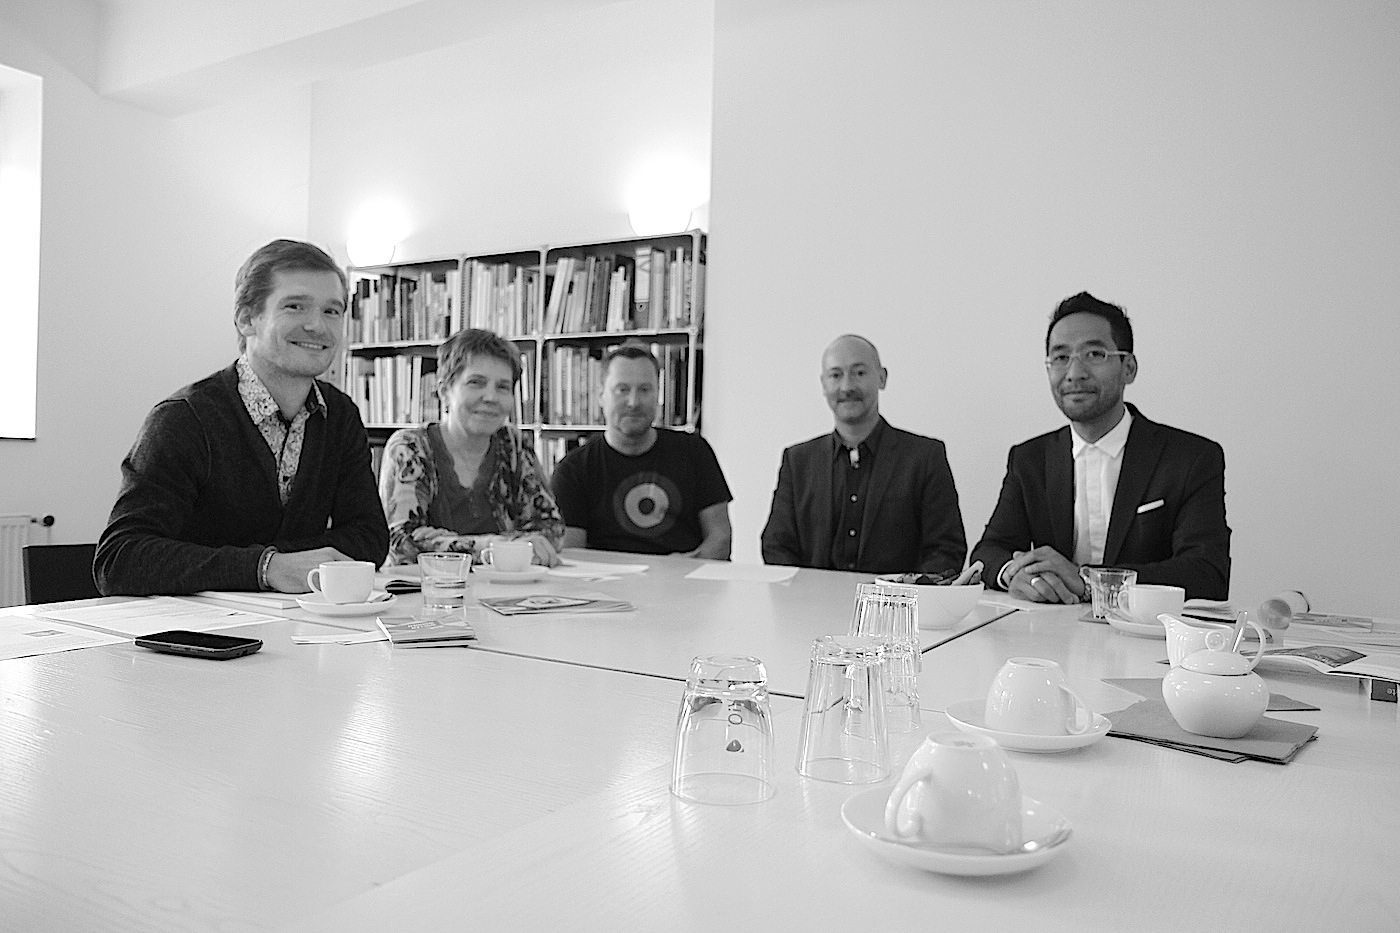 THE LINK to M:AI.  Von rechts nach links: Timo Klippstein (M:AI Kommunikation), M:AI Kuratorin Dr. Ursula Kleefisch-Jobst, Projektleiter Peter Köddermann, Architekt Hendrik Bohle and Journalist Jan Dimog von THE LINK